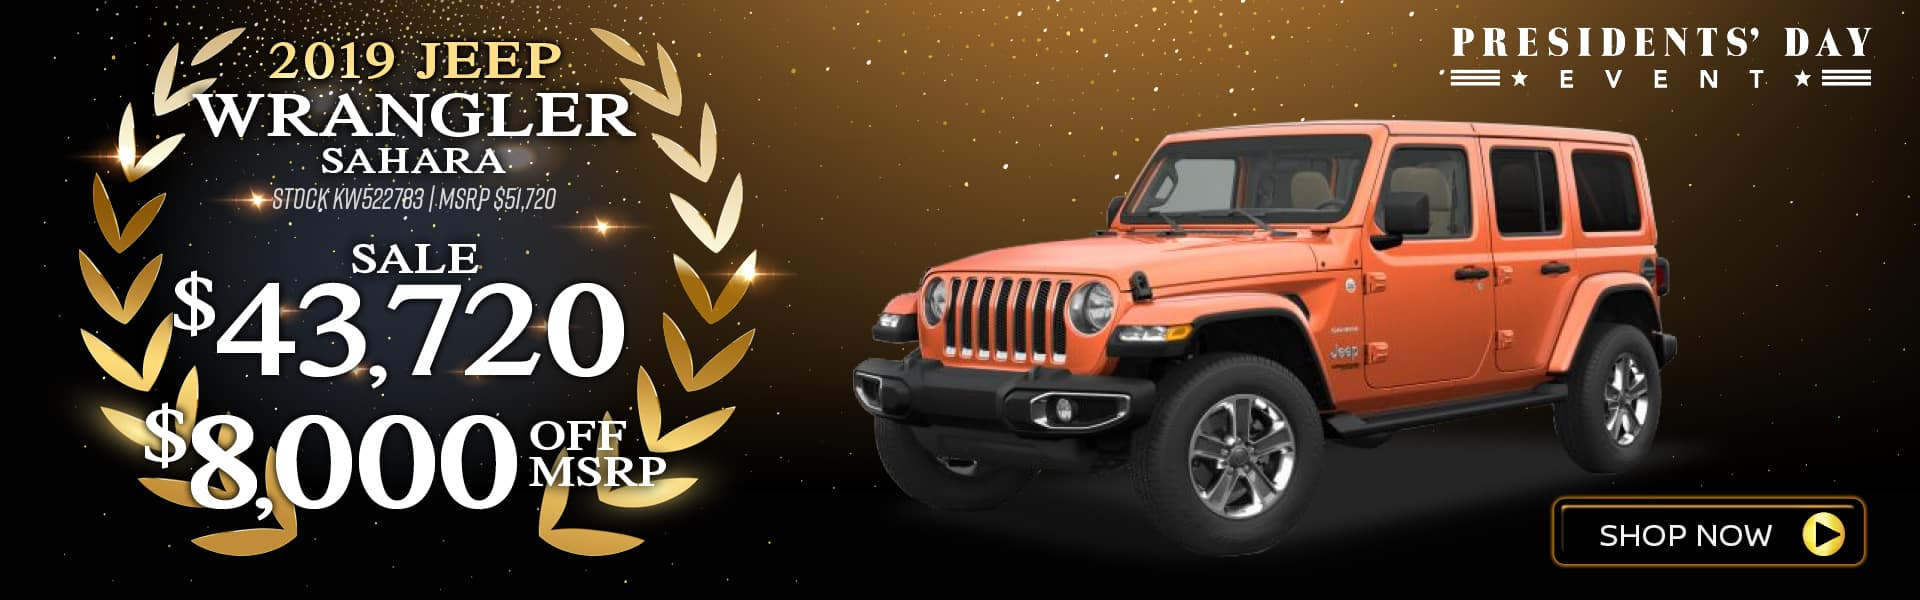 New Jeep Wrangler for Sale in Shippensburg, PA